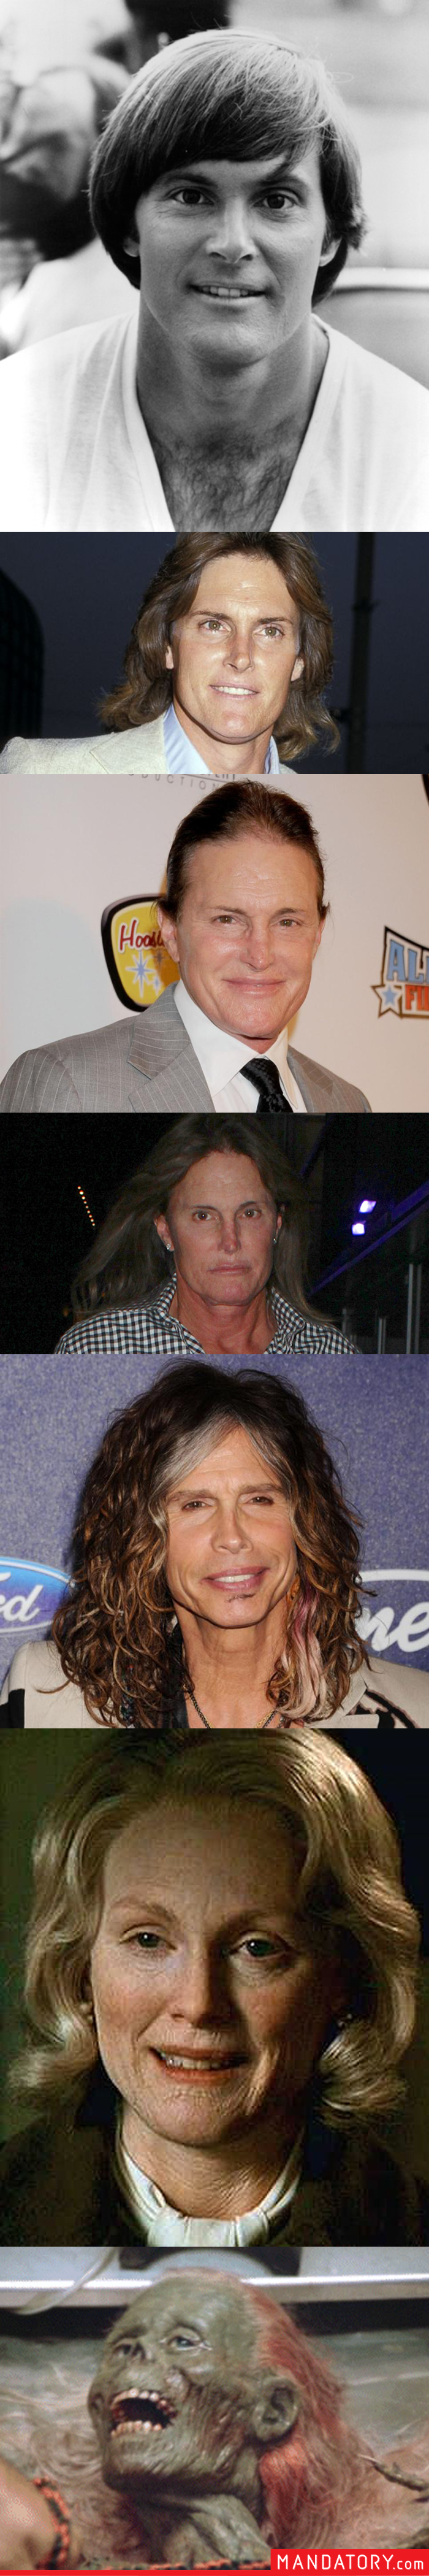 Bruce Jenner's Transformation Has Been Absolutely Staggering